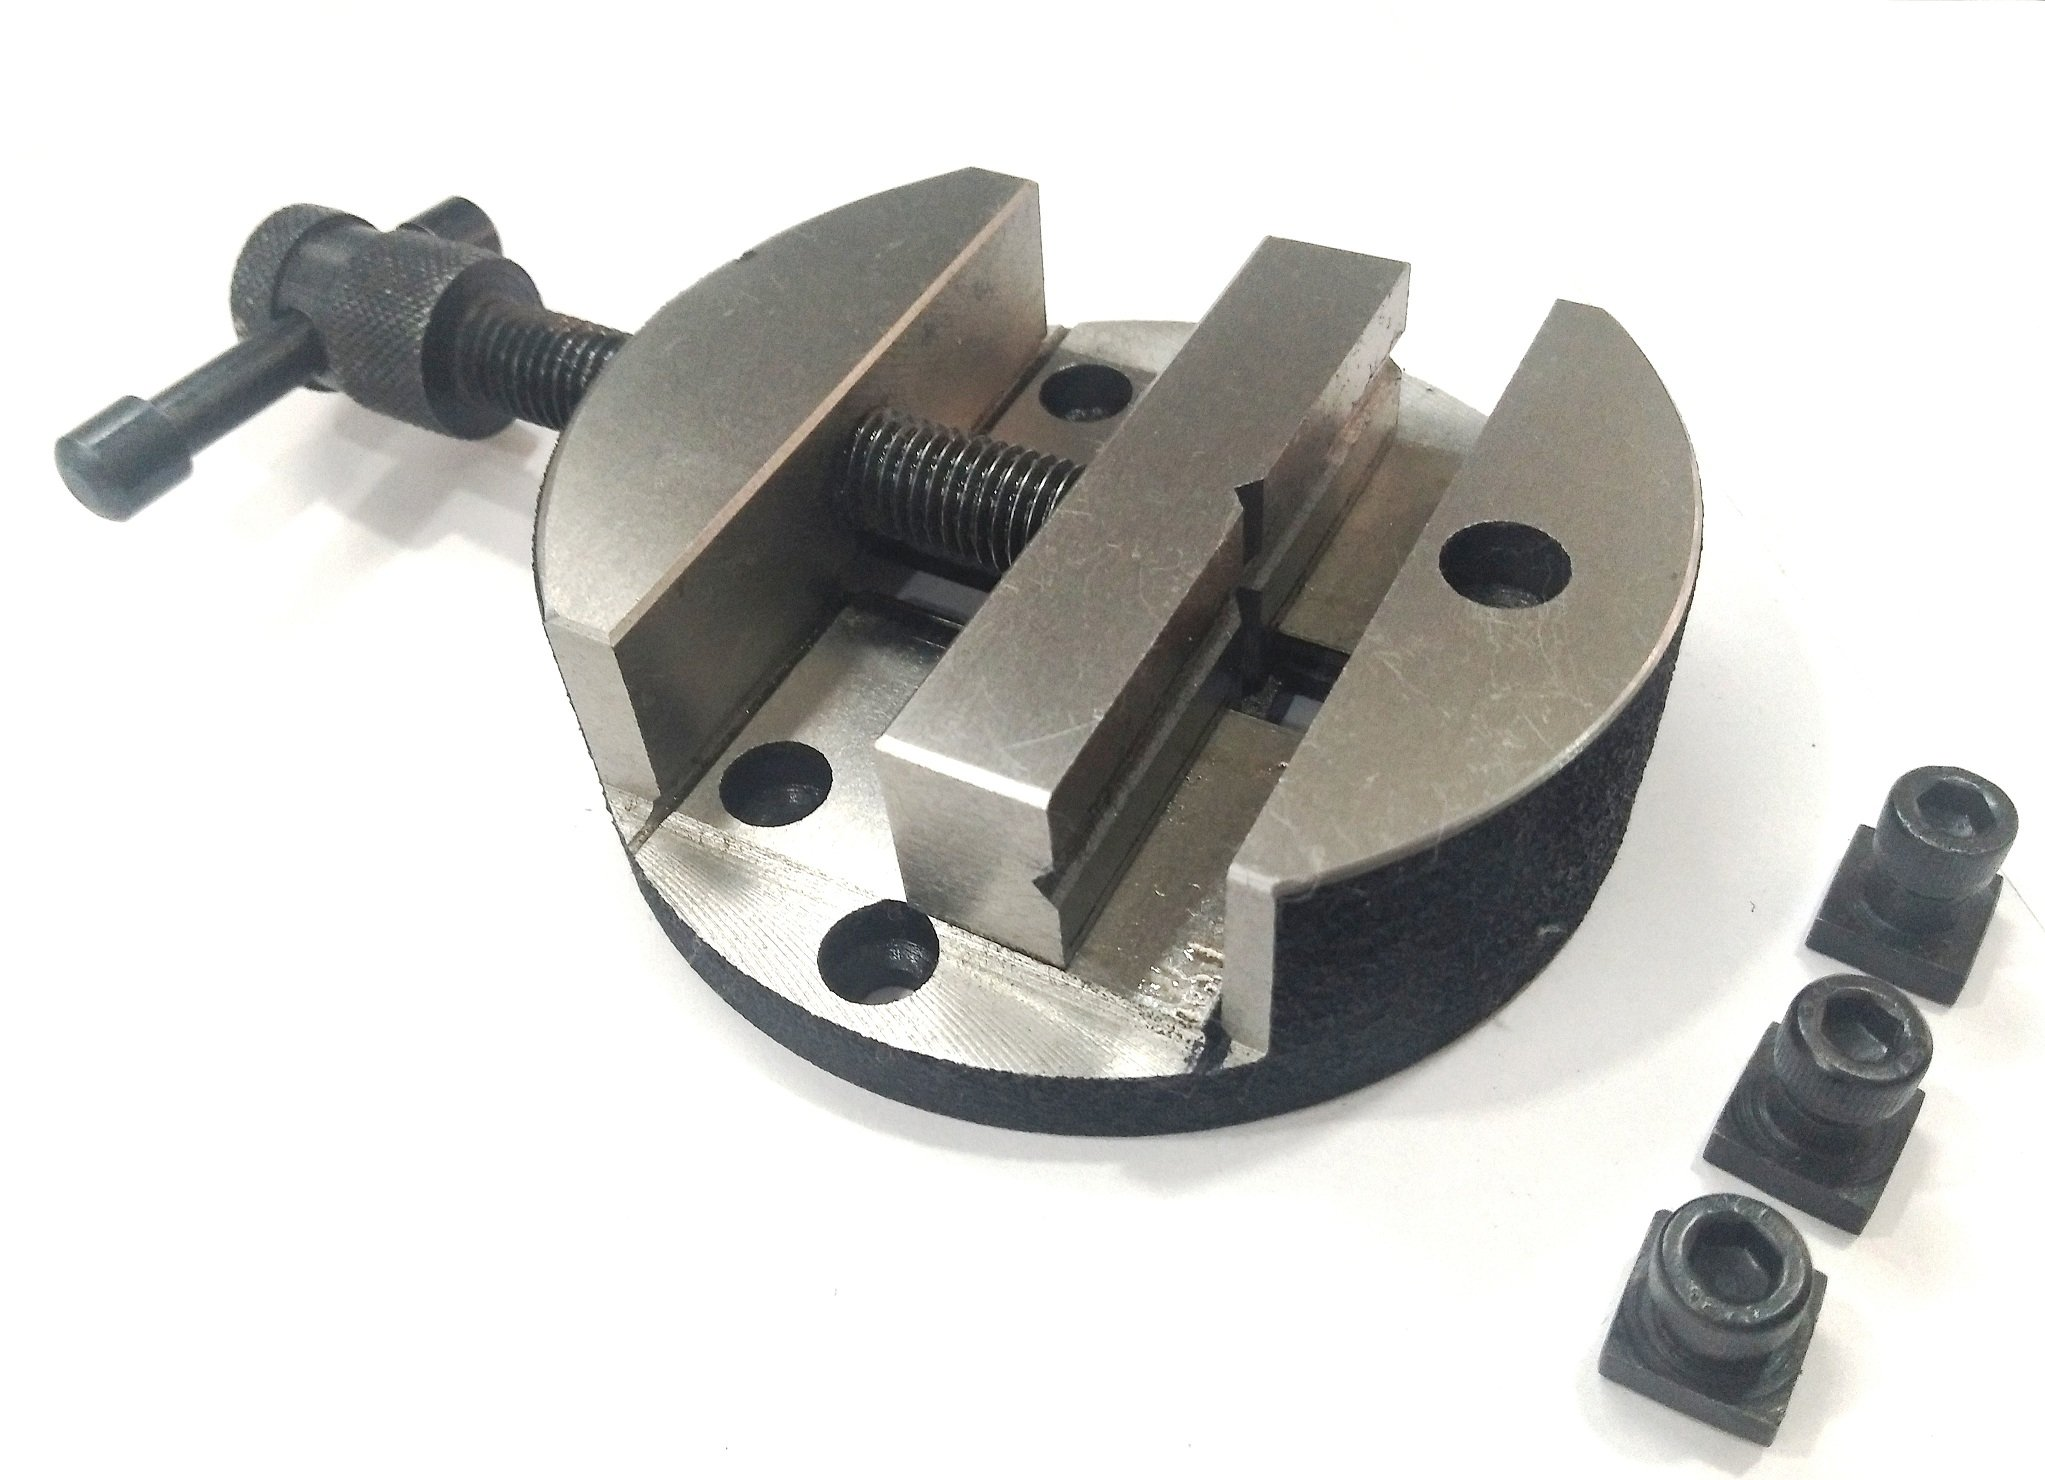 ASSORTS's Quality 80 mm Round Vice for 3'' (80 mm) & 4'' (100 mm) Rotary Milling Indexing Table with 3 x M6 T nuts Bolts-Engineering Tools